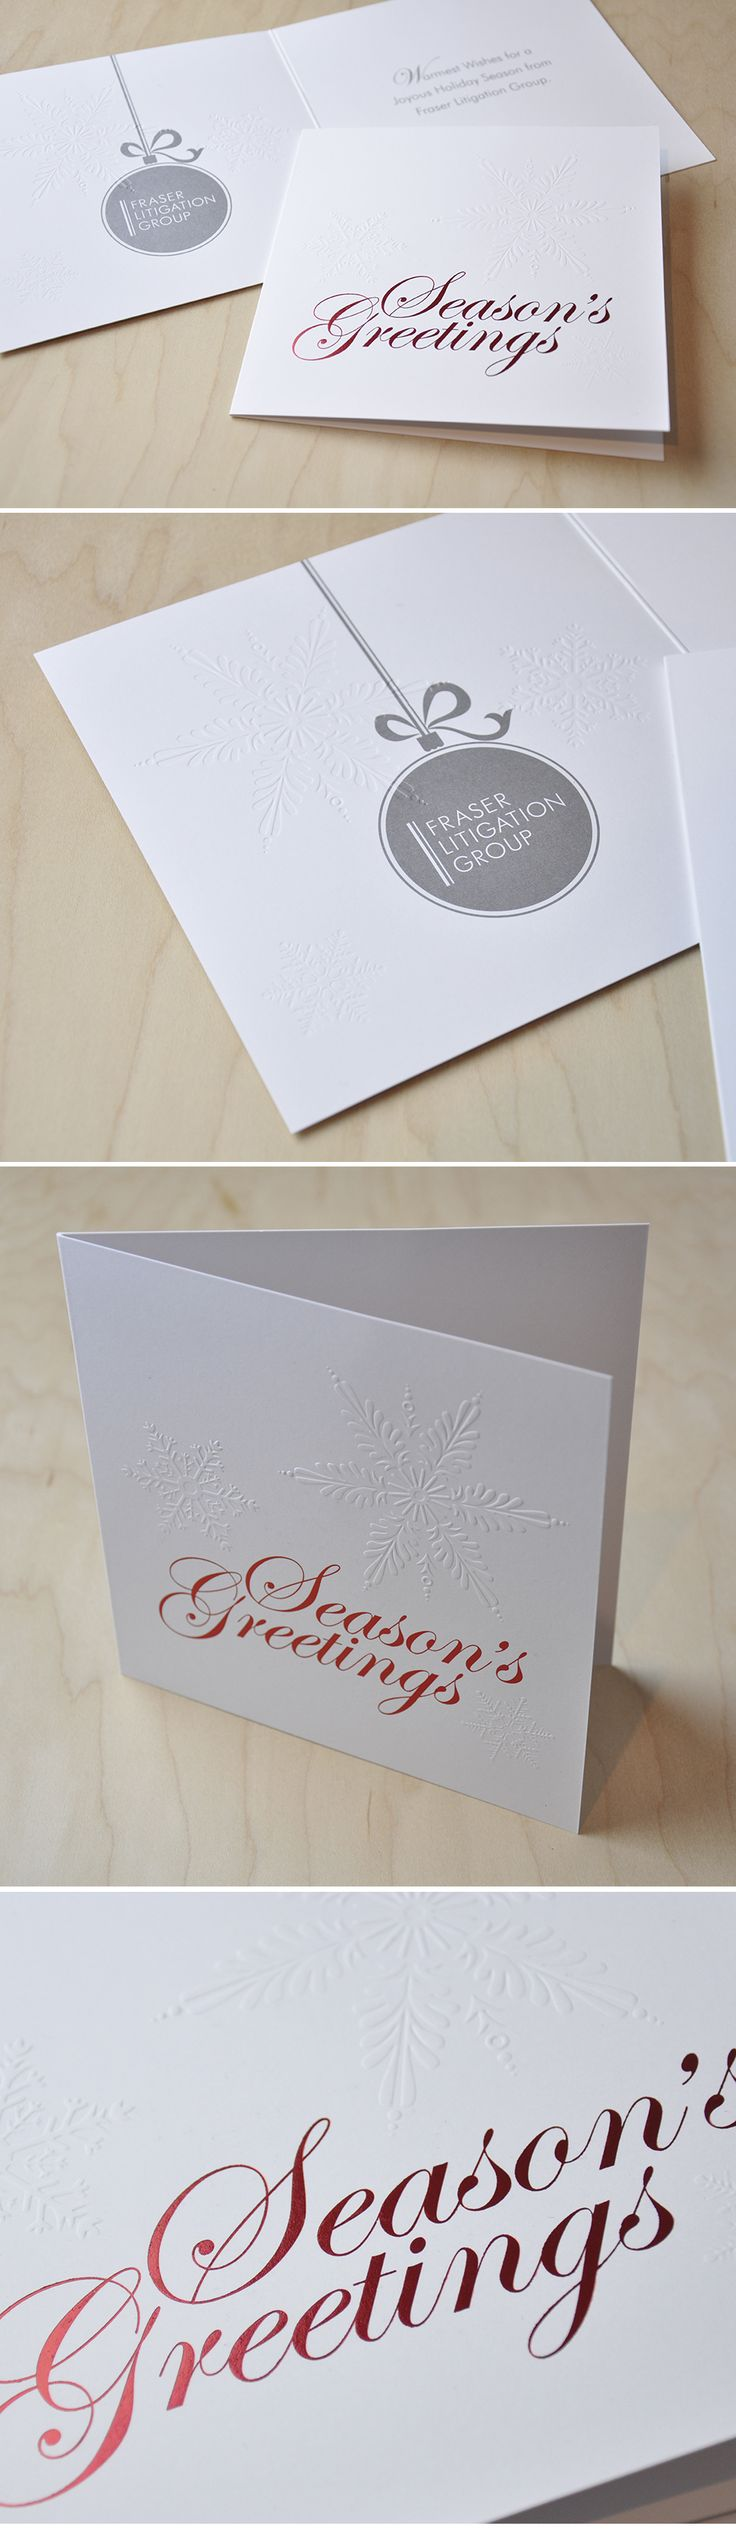 7 best Christmas Cards images on Pinterest   Christmas cards ...